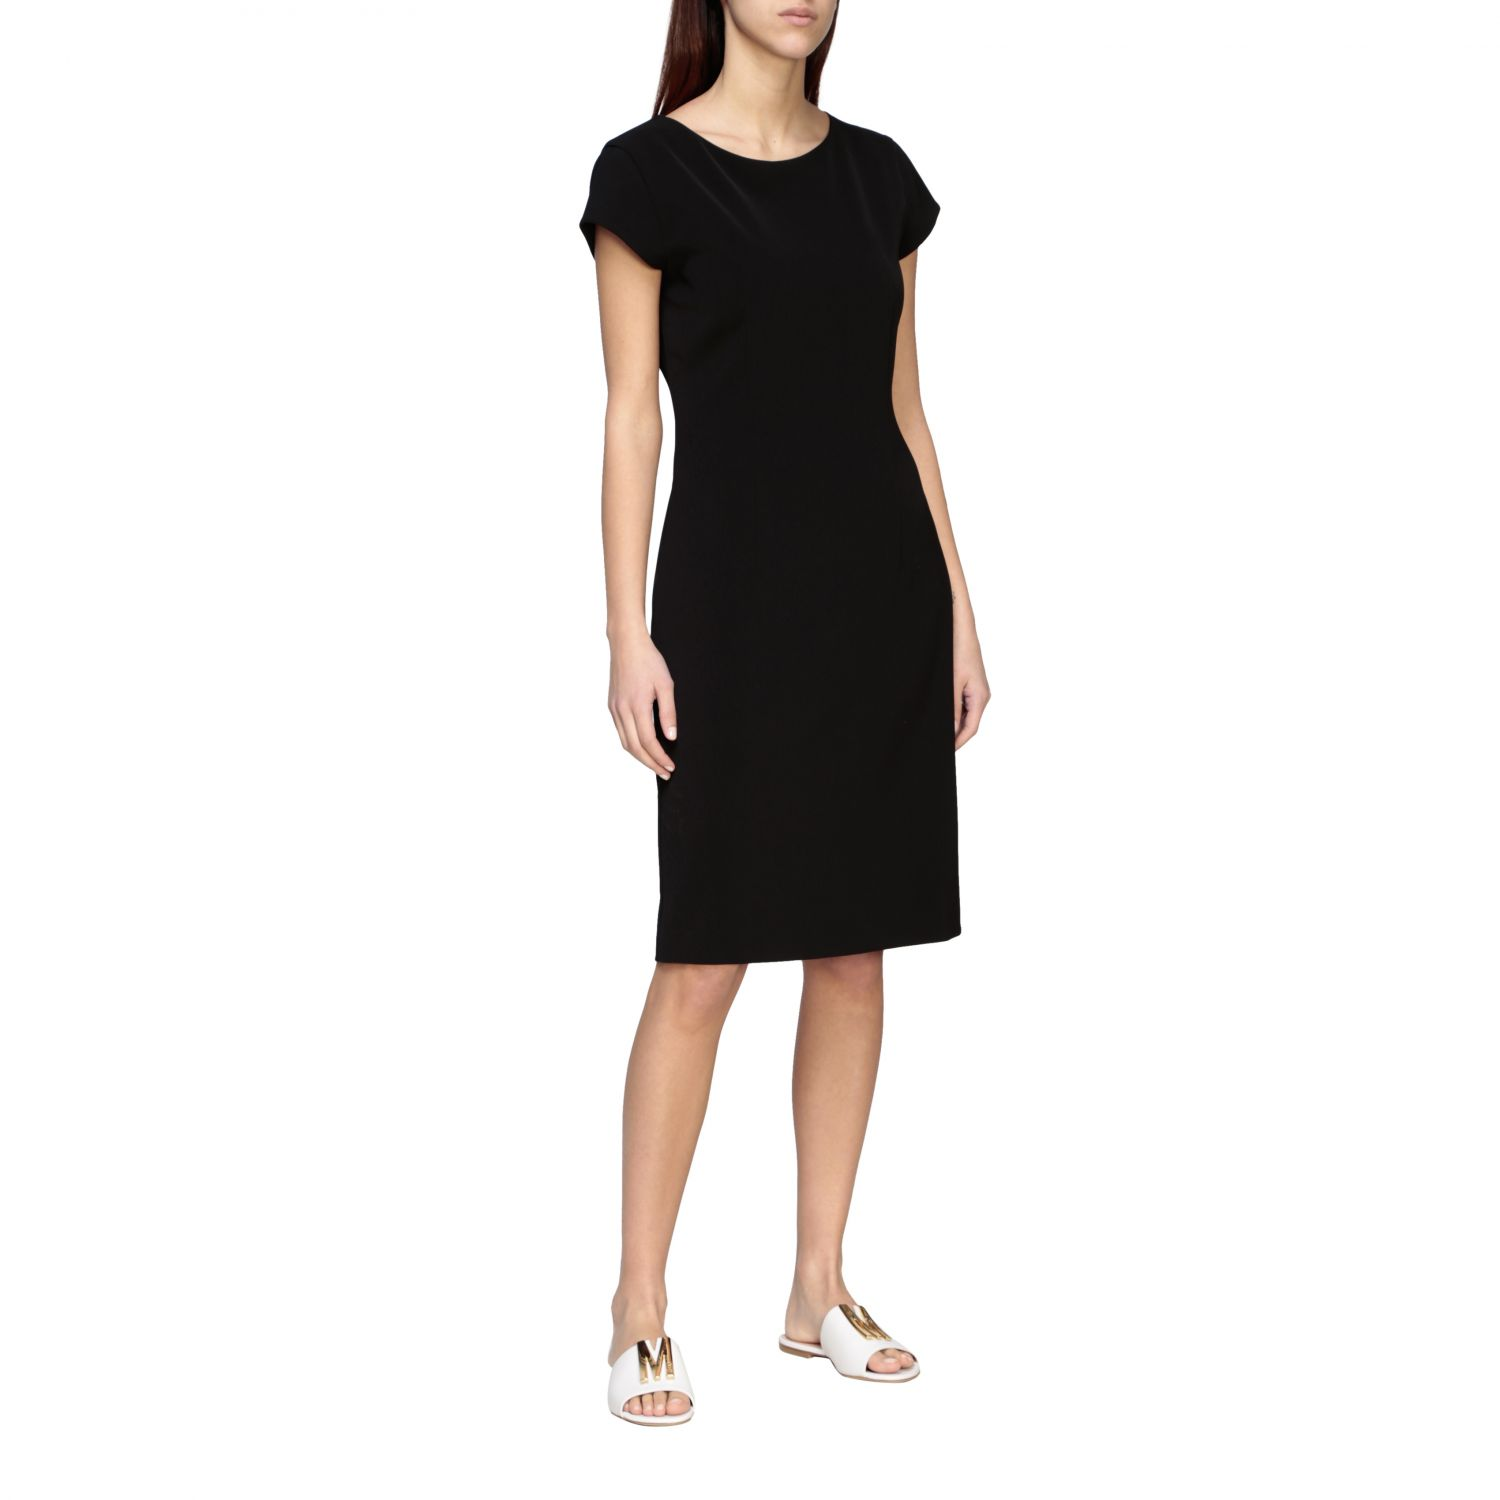 Dress Boutique Moschino: Dress women Boutique Moschino black 1